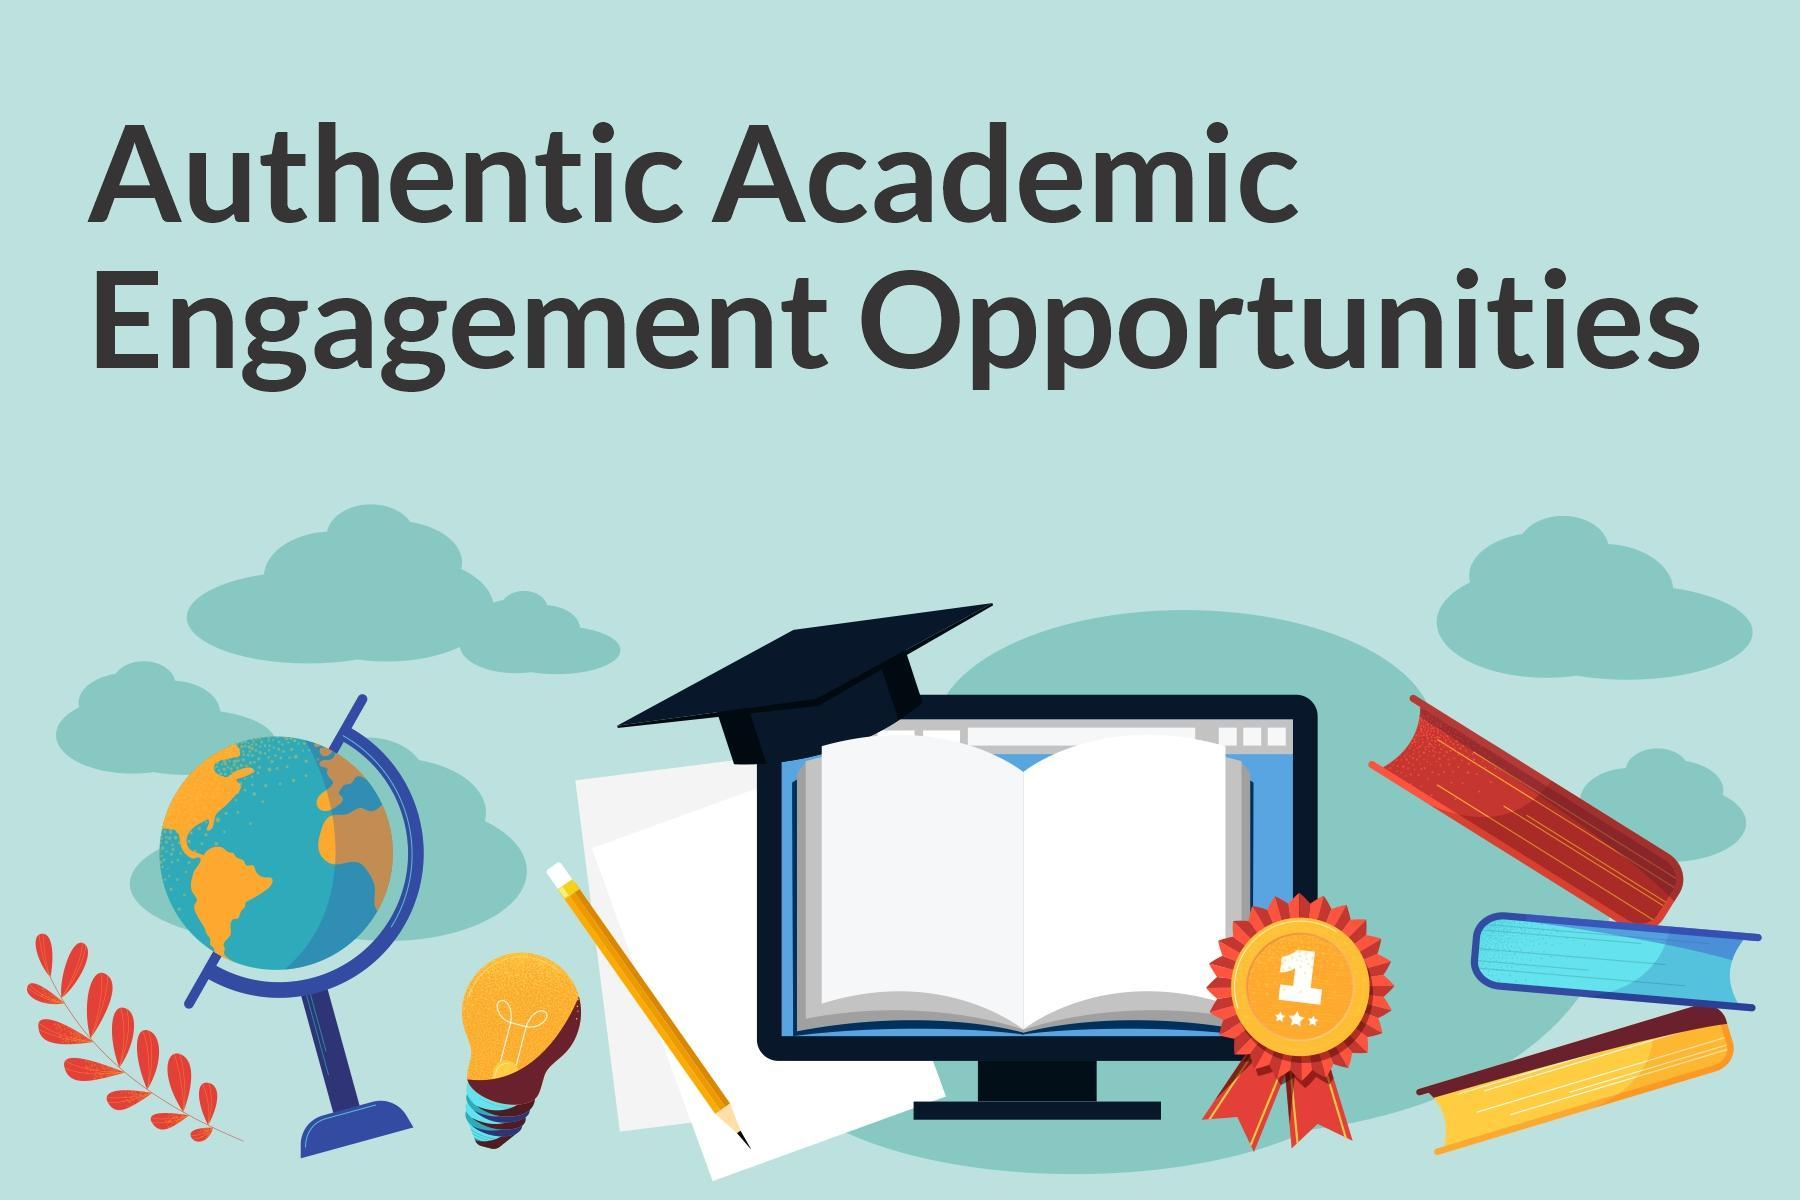 Academic Opportunities